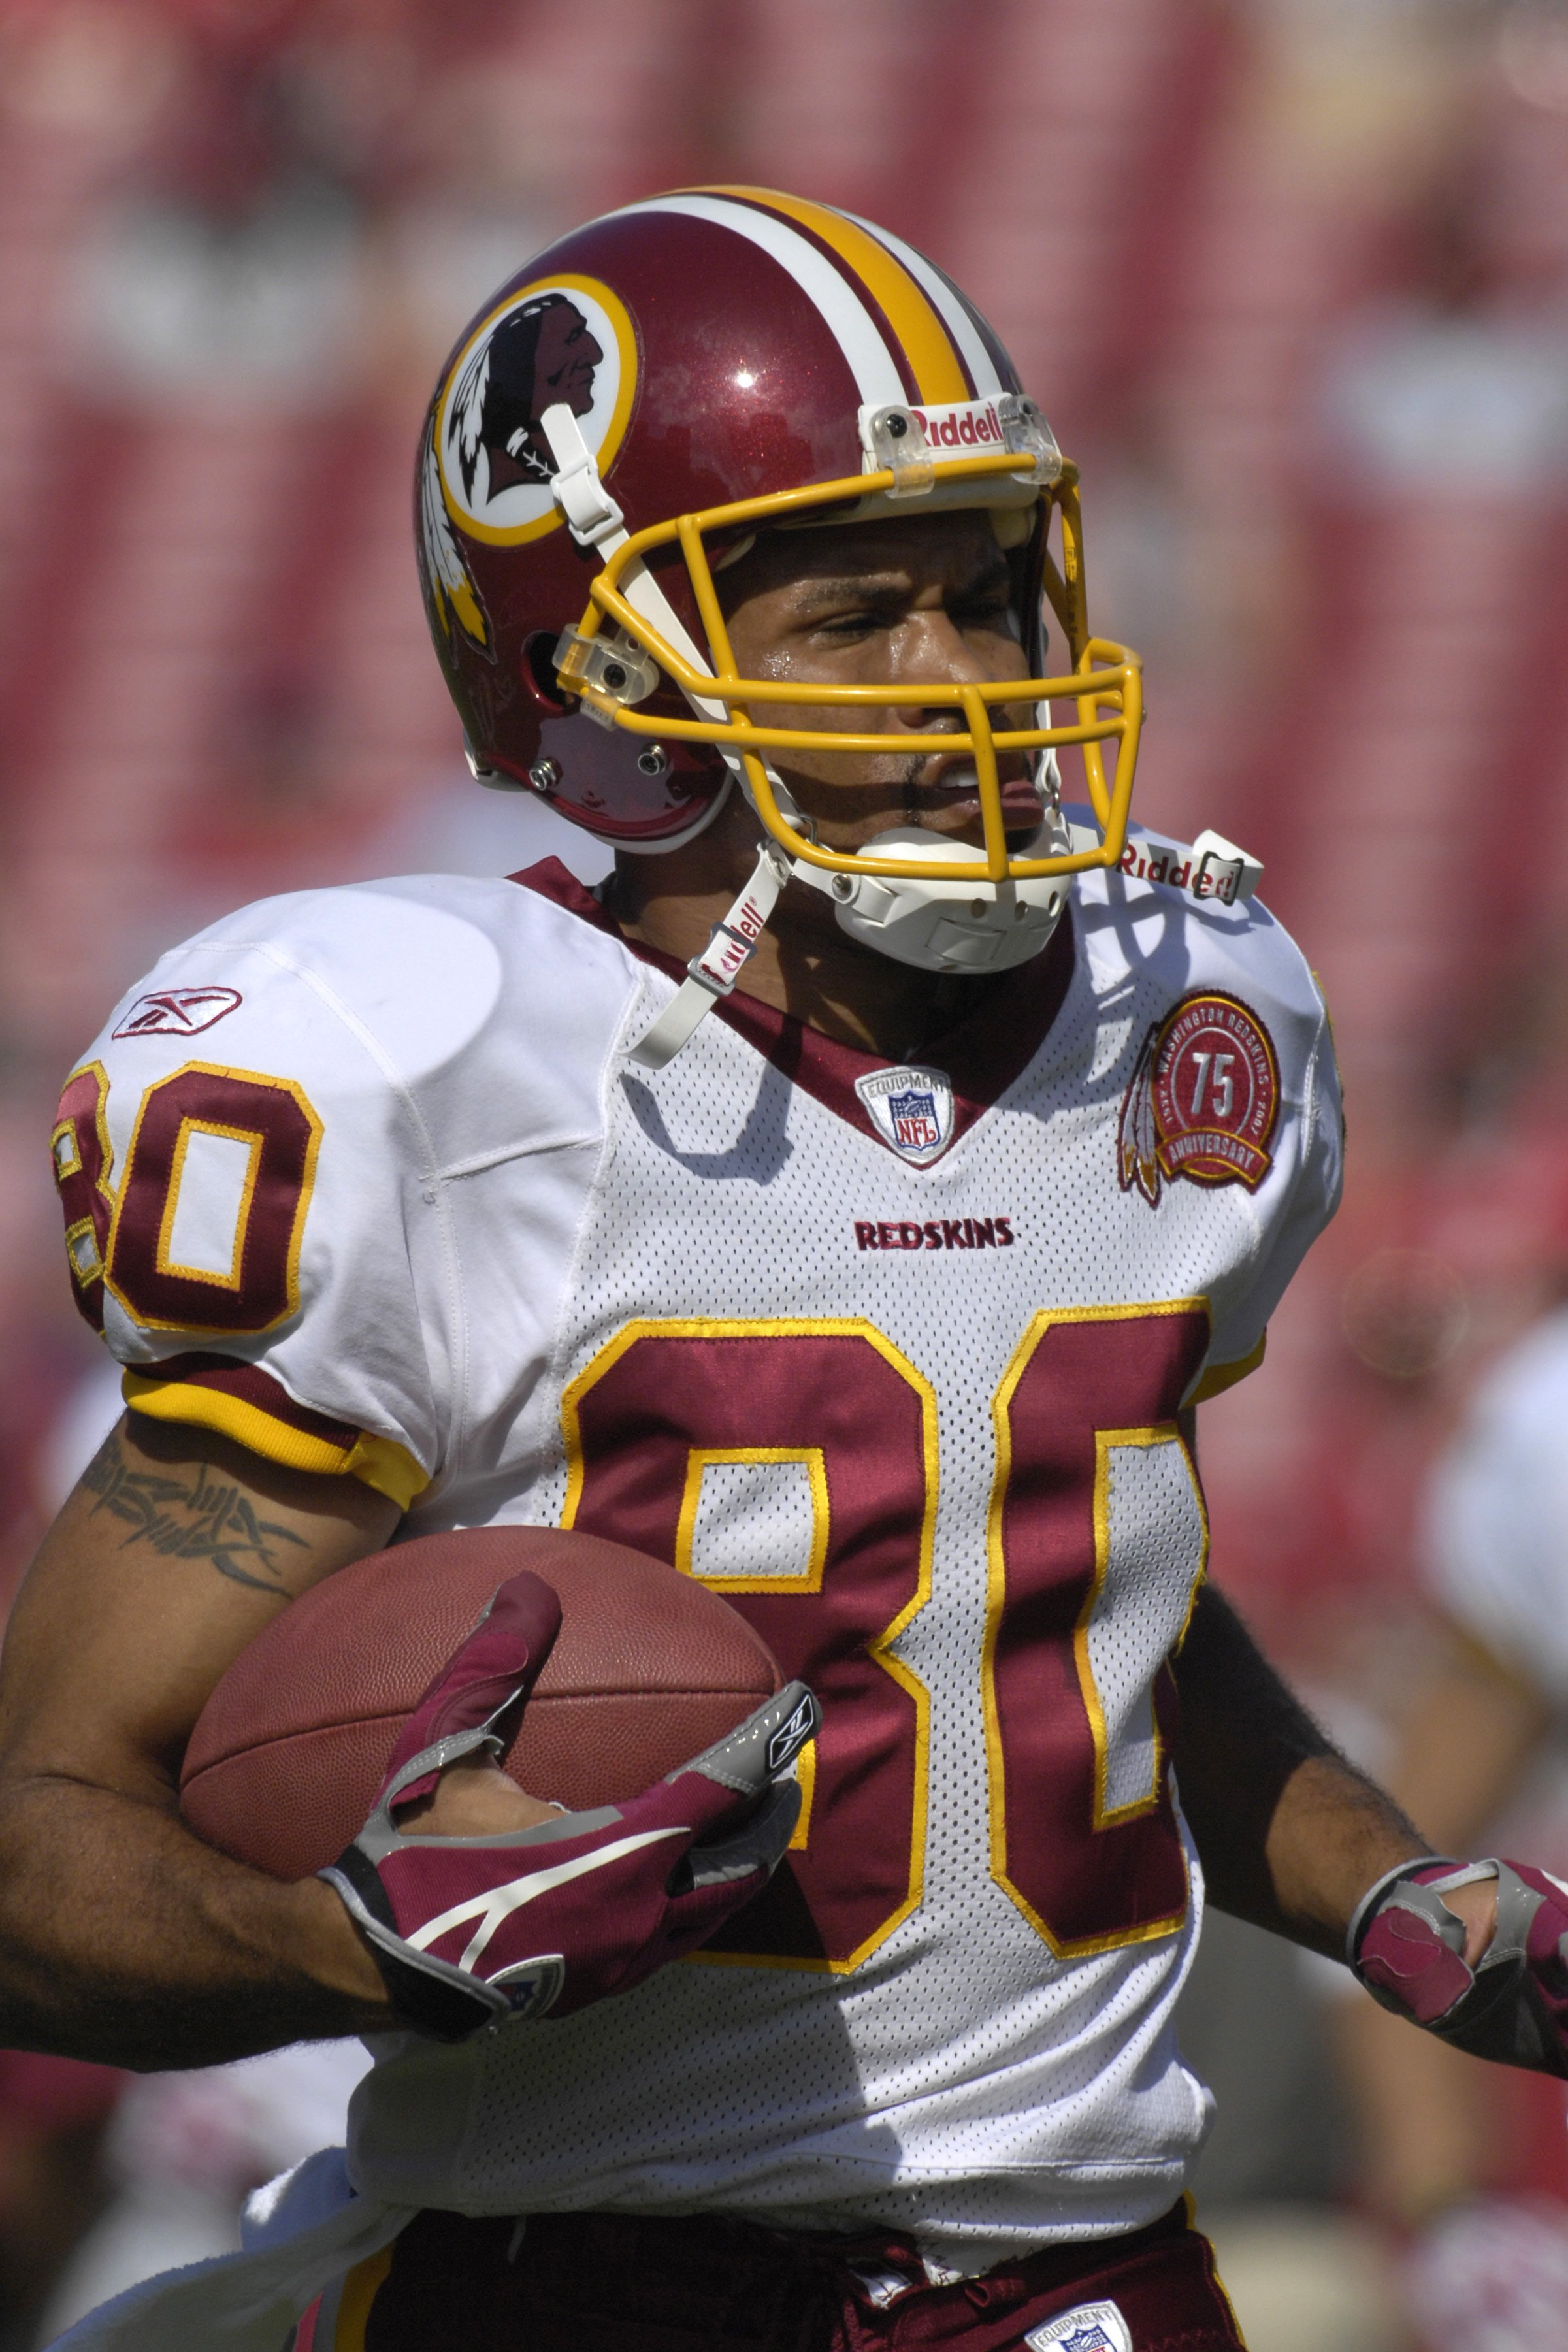 TAMPA, FL - NOVEMBER 25: Wide receiver Keenan McCardell #80 of the Washington Redskins grabs a warm up pass before play against the Tampa Bay Buccaneers at the Raymond James Stadium on November 25, 2007 in Tampa, Florida.  The Bucs won 19-13. (Photo by Al